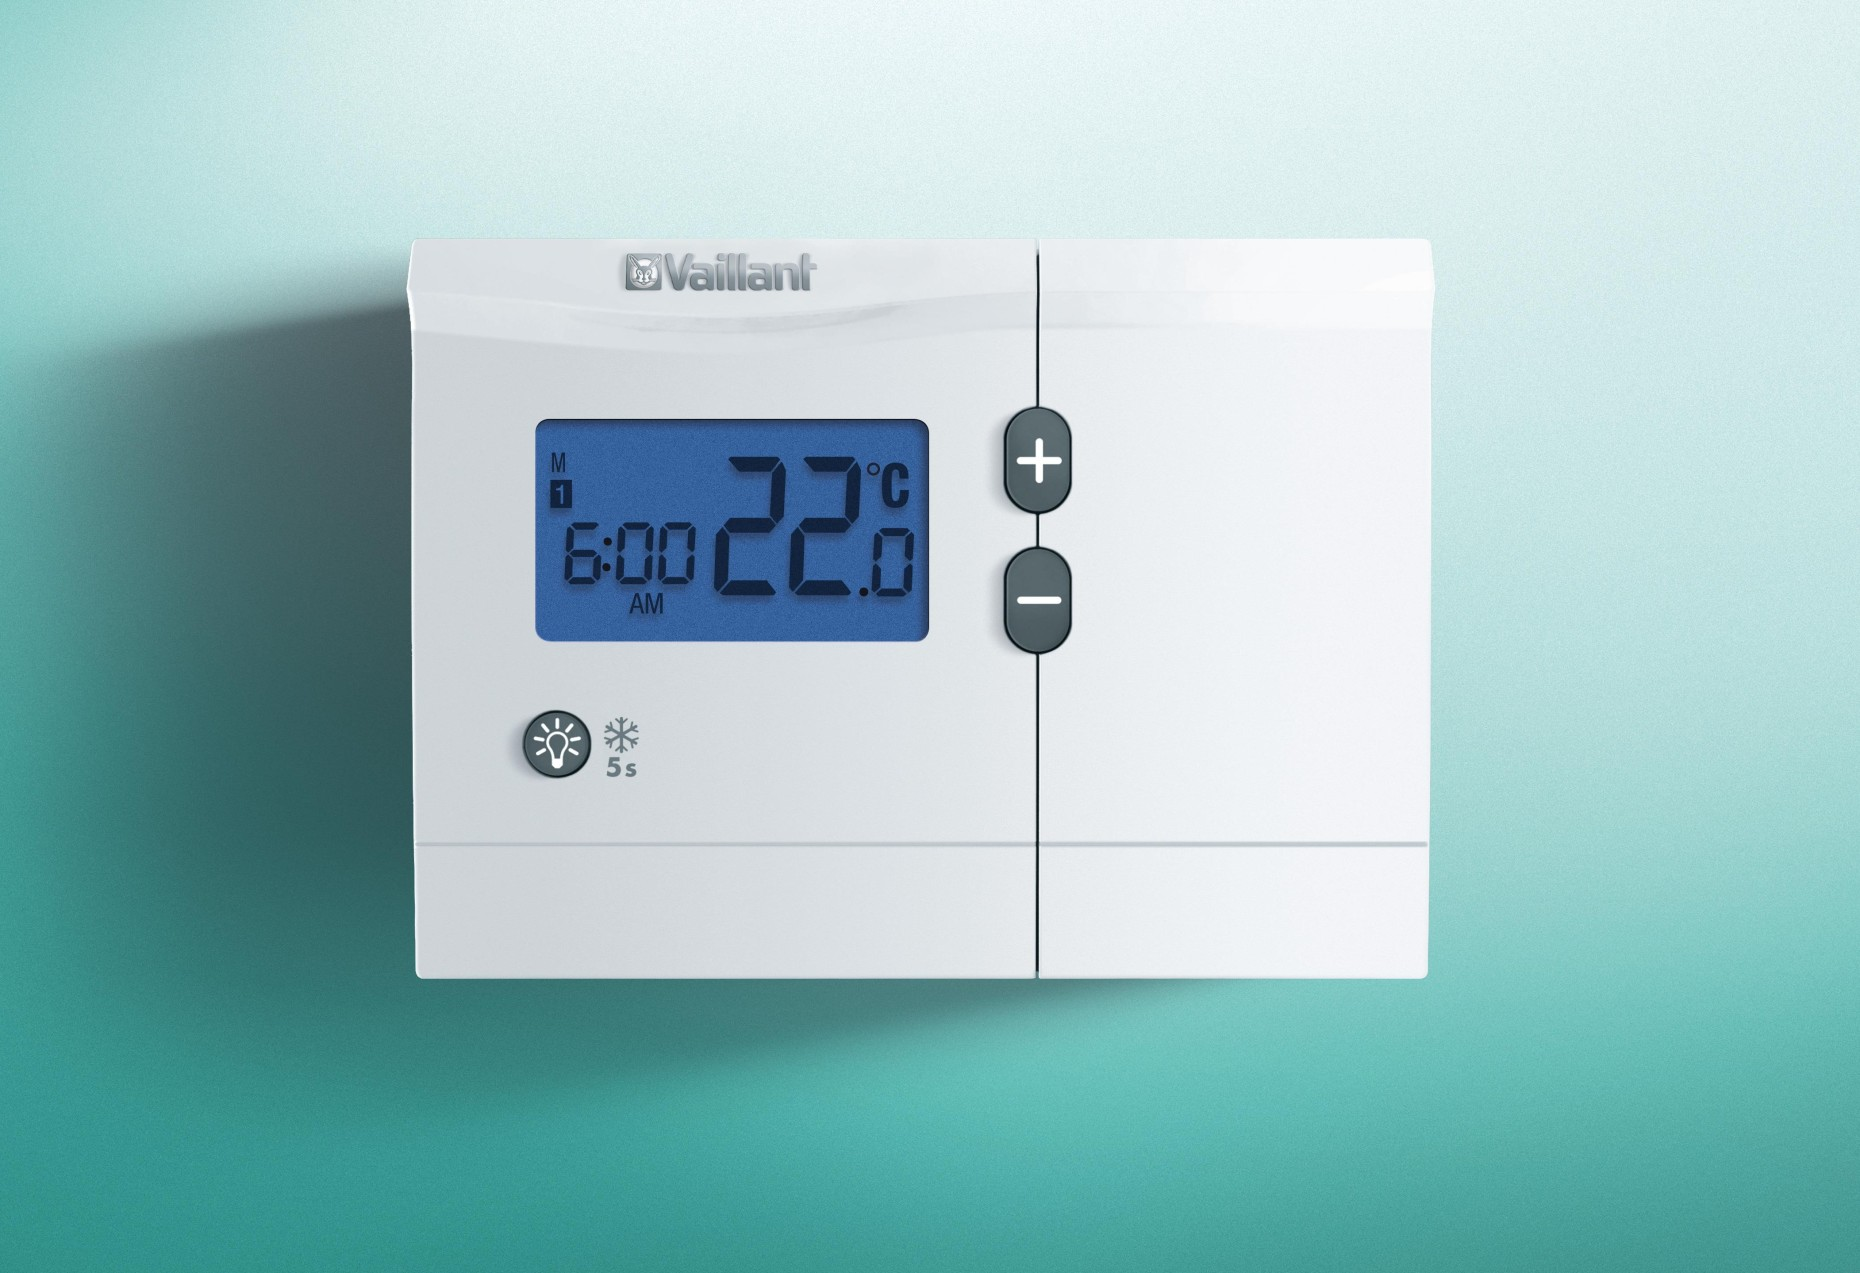 calormatic 250 250f controller for multiple sources of energy vaillant. Black Bedroom Furniture Sets. Home Design Ideas